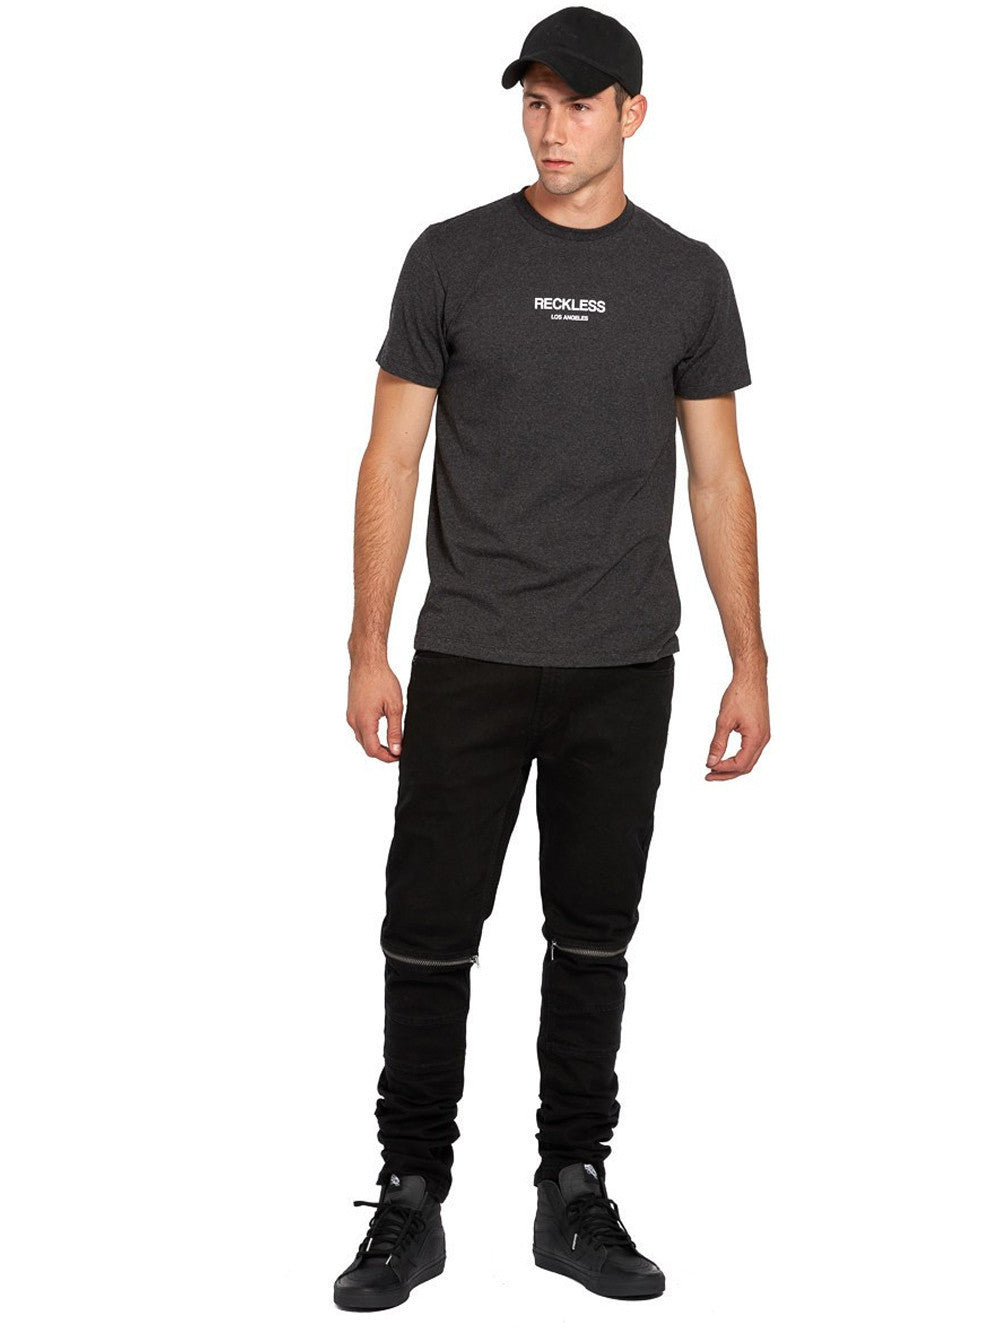 Young and Reckless Mens - Tees - Graphic Tee Classic Tee - Pepper Black